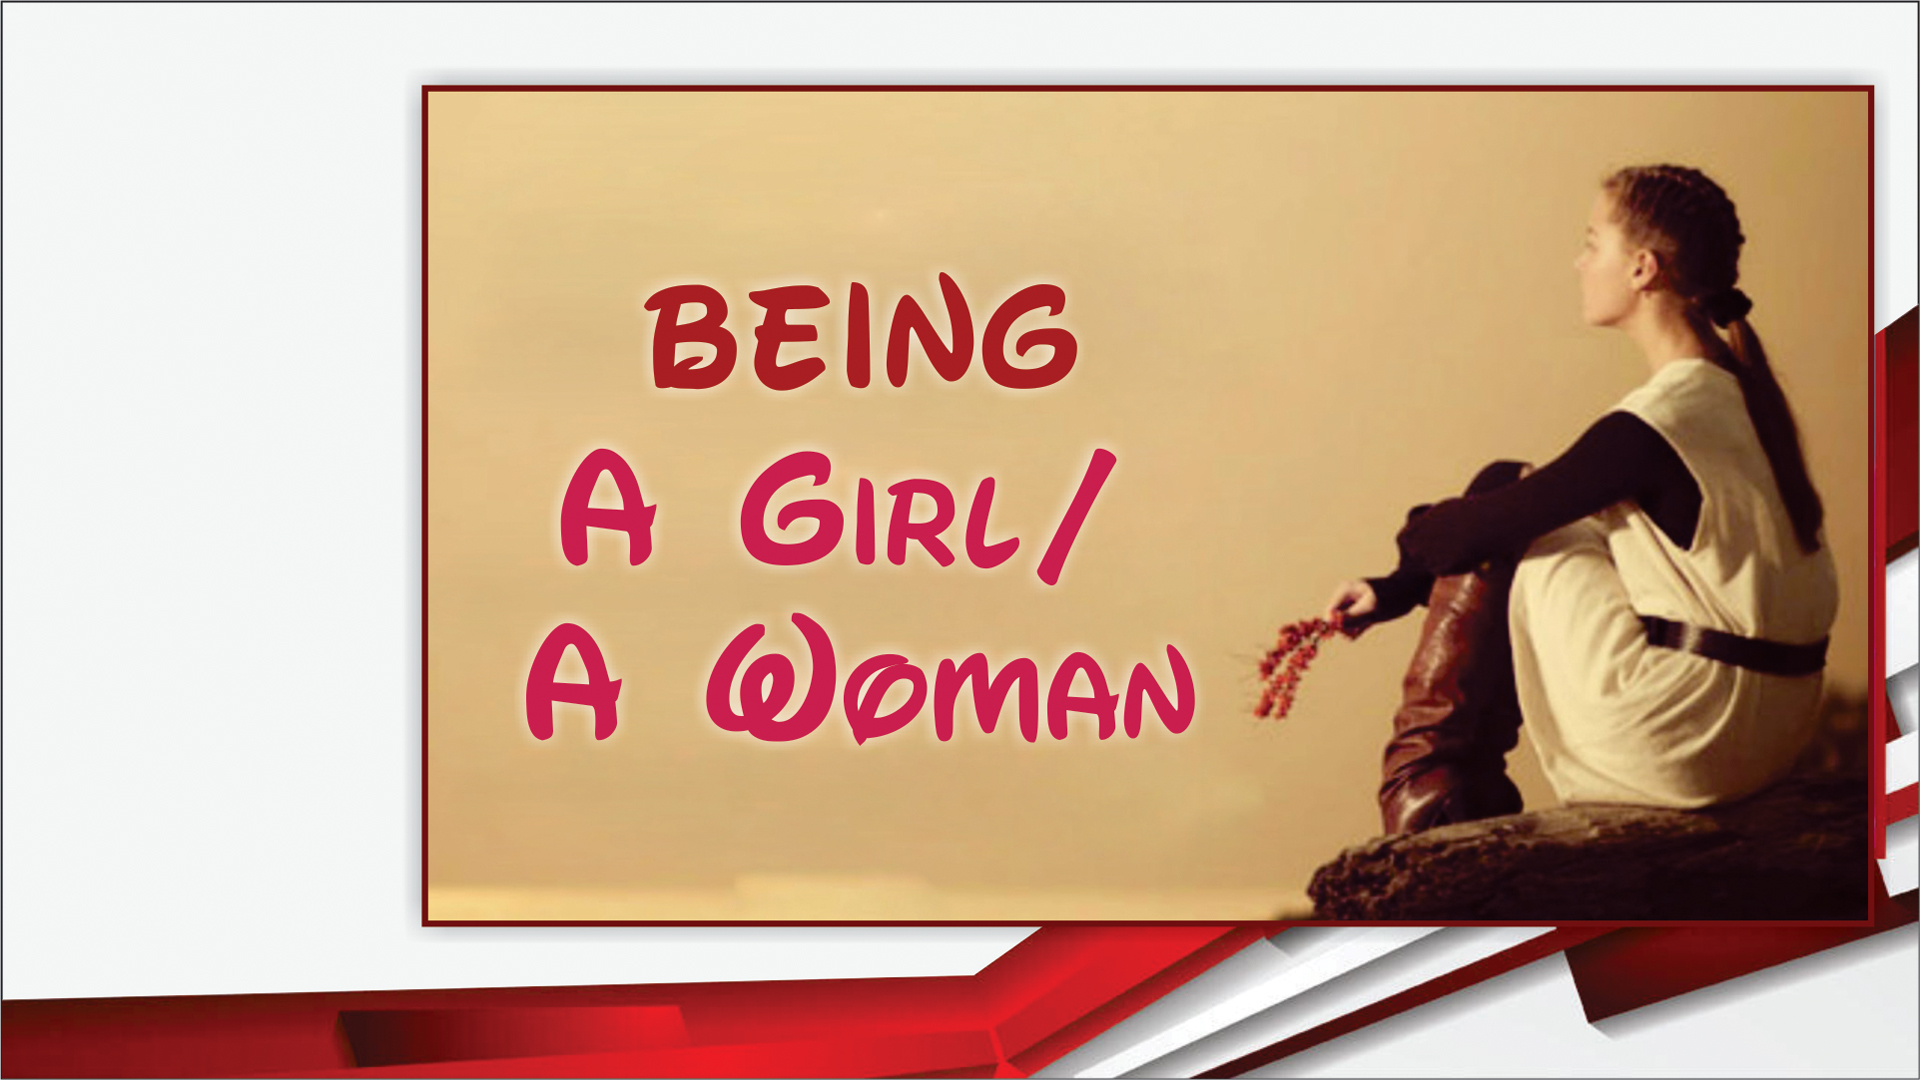 being-girl-woman